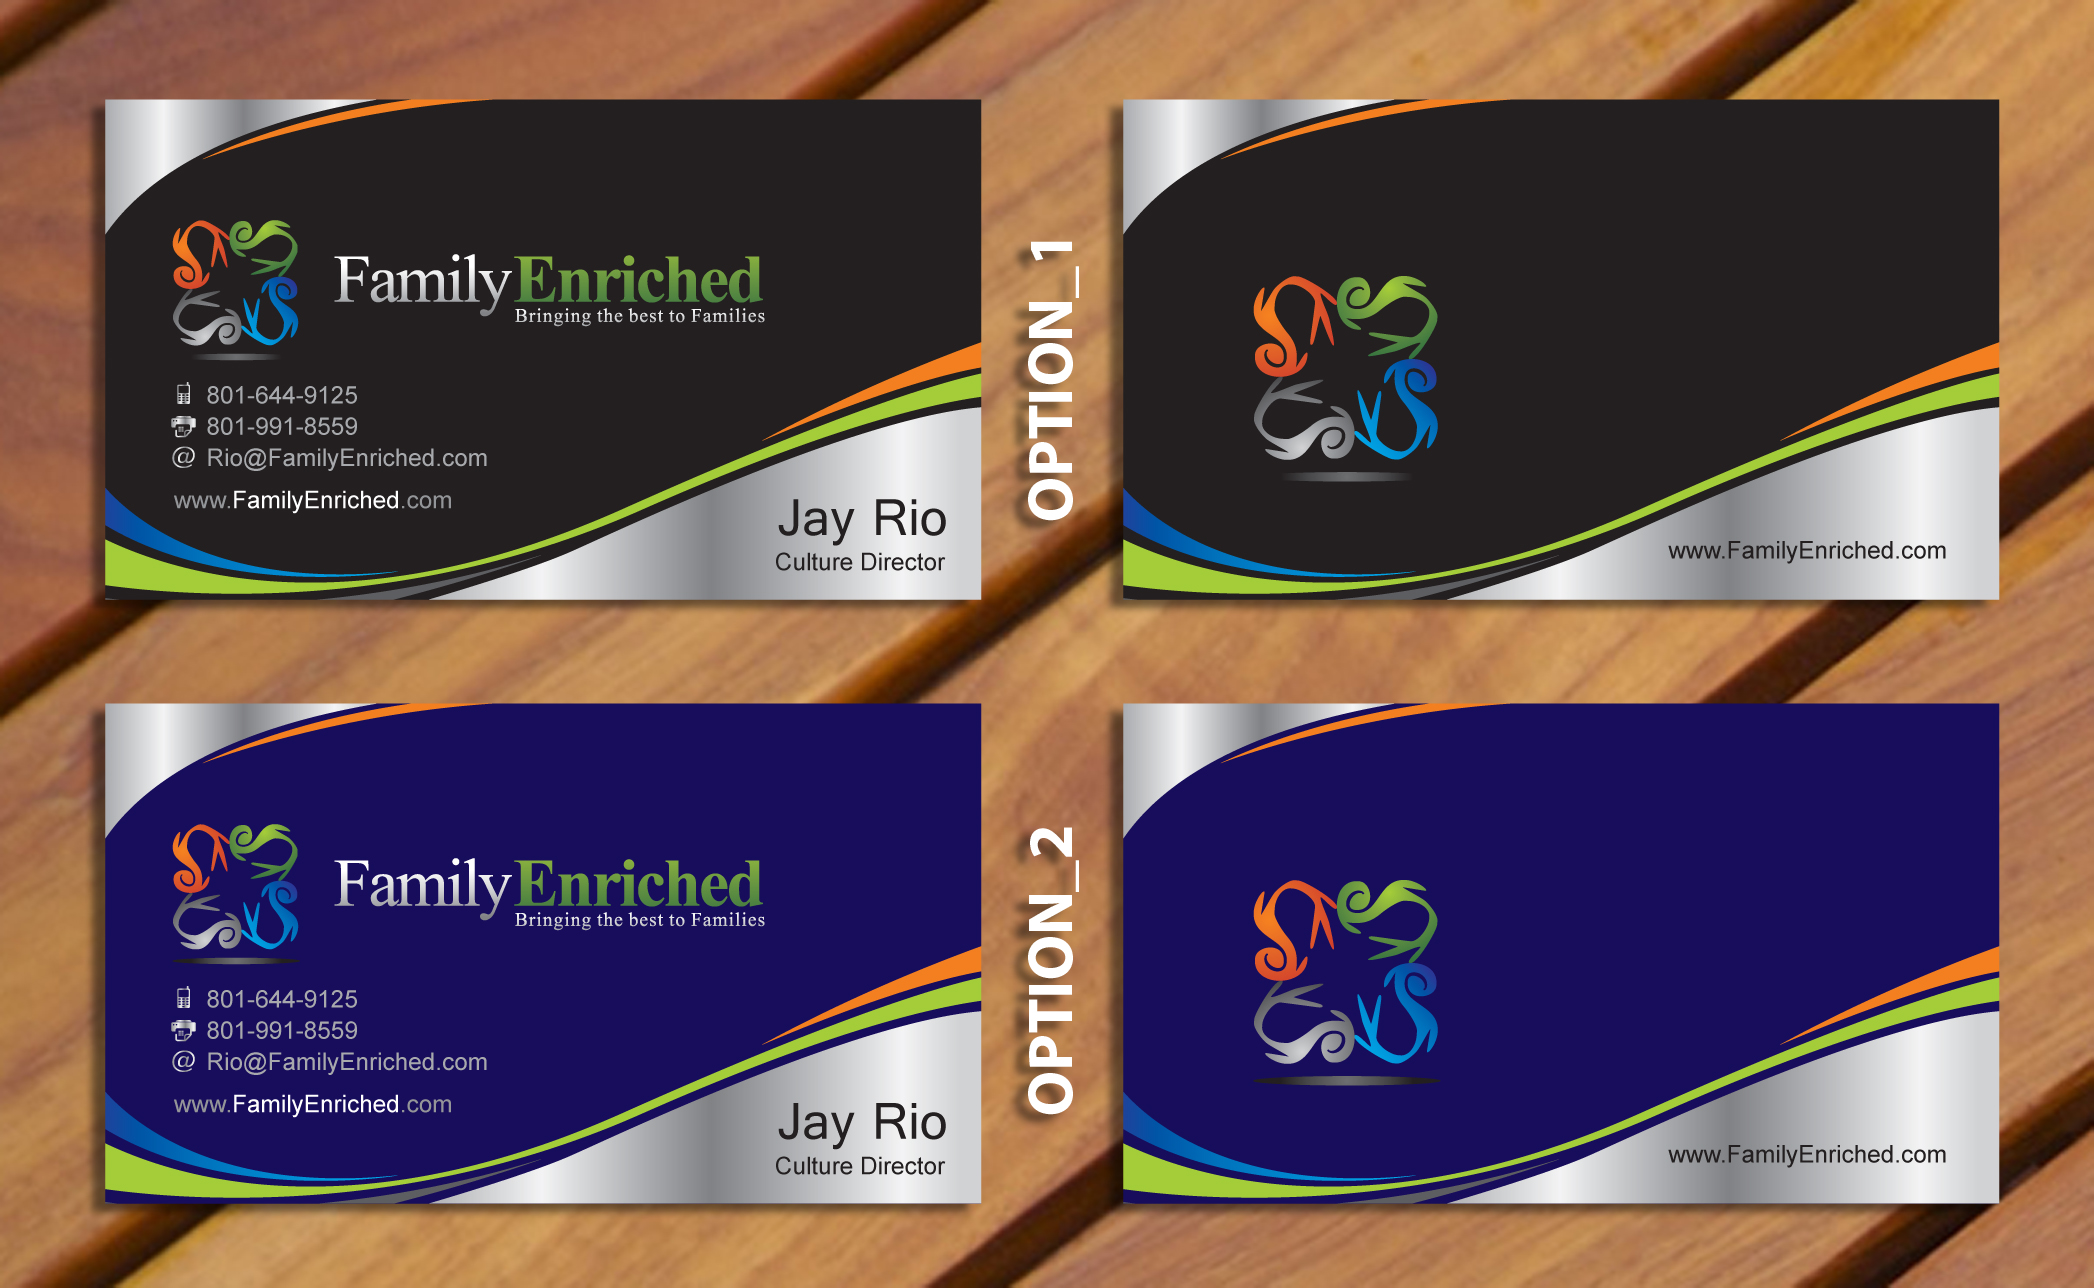 Family Enriched Business Card - Events